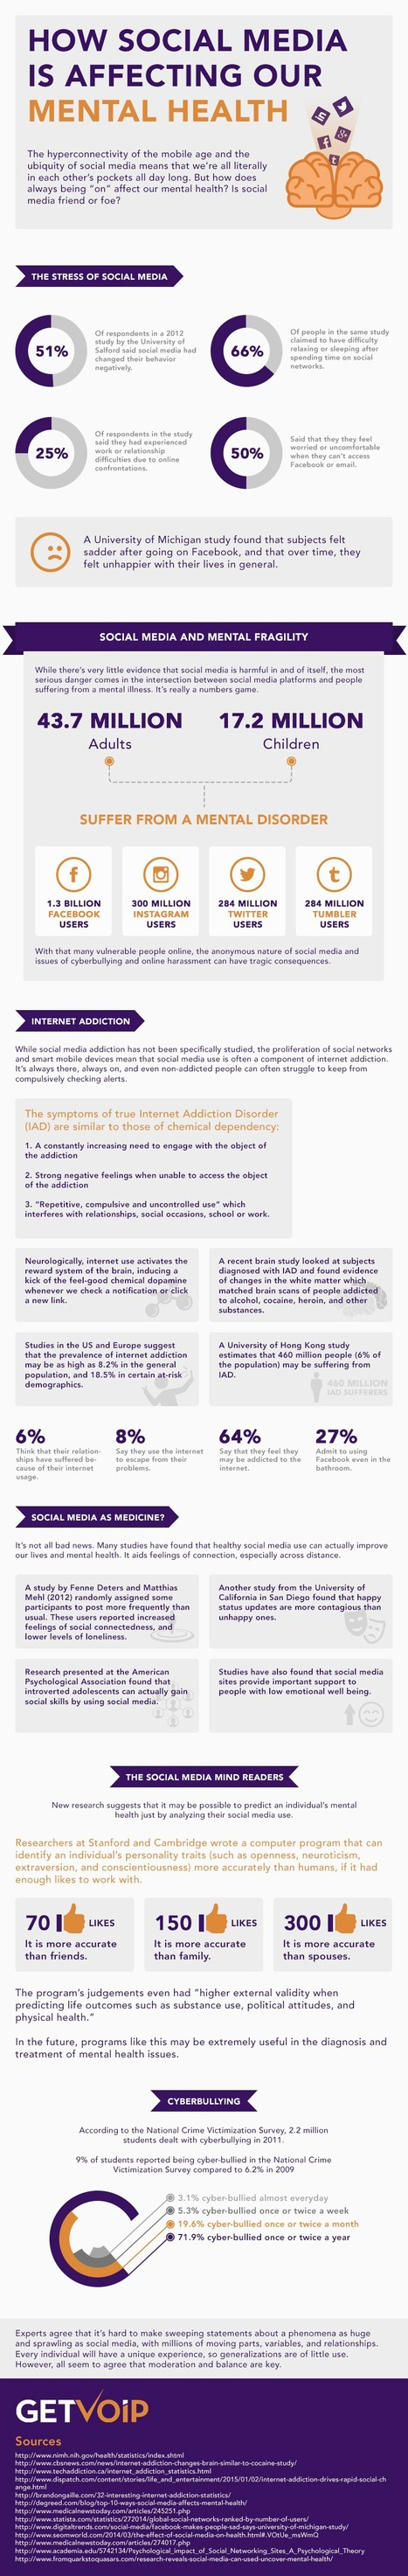 How Social Media is Affecting Our Mental Health [Infographic] | Psychology Matters | Scoop.it